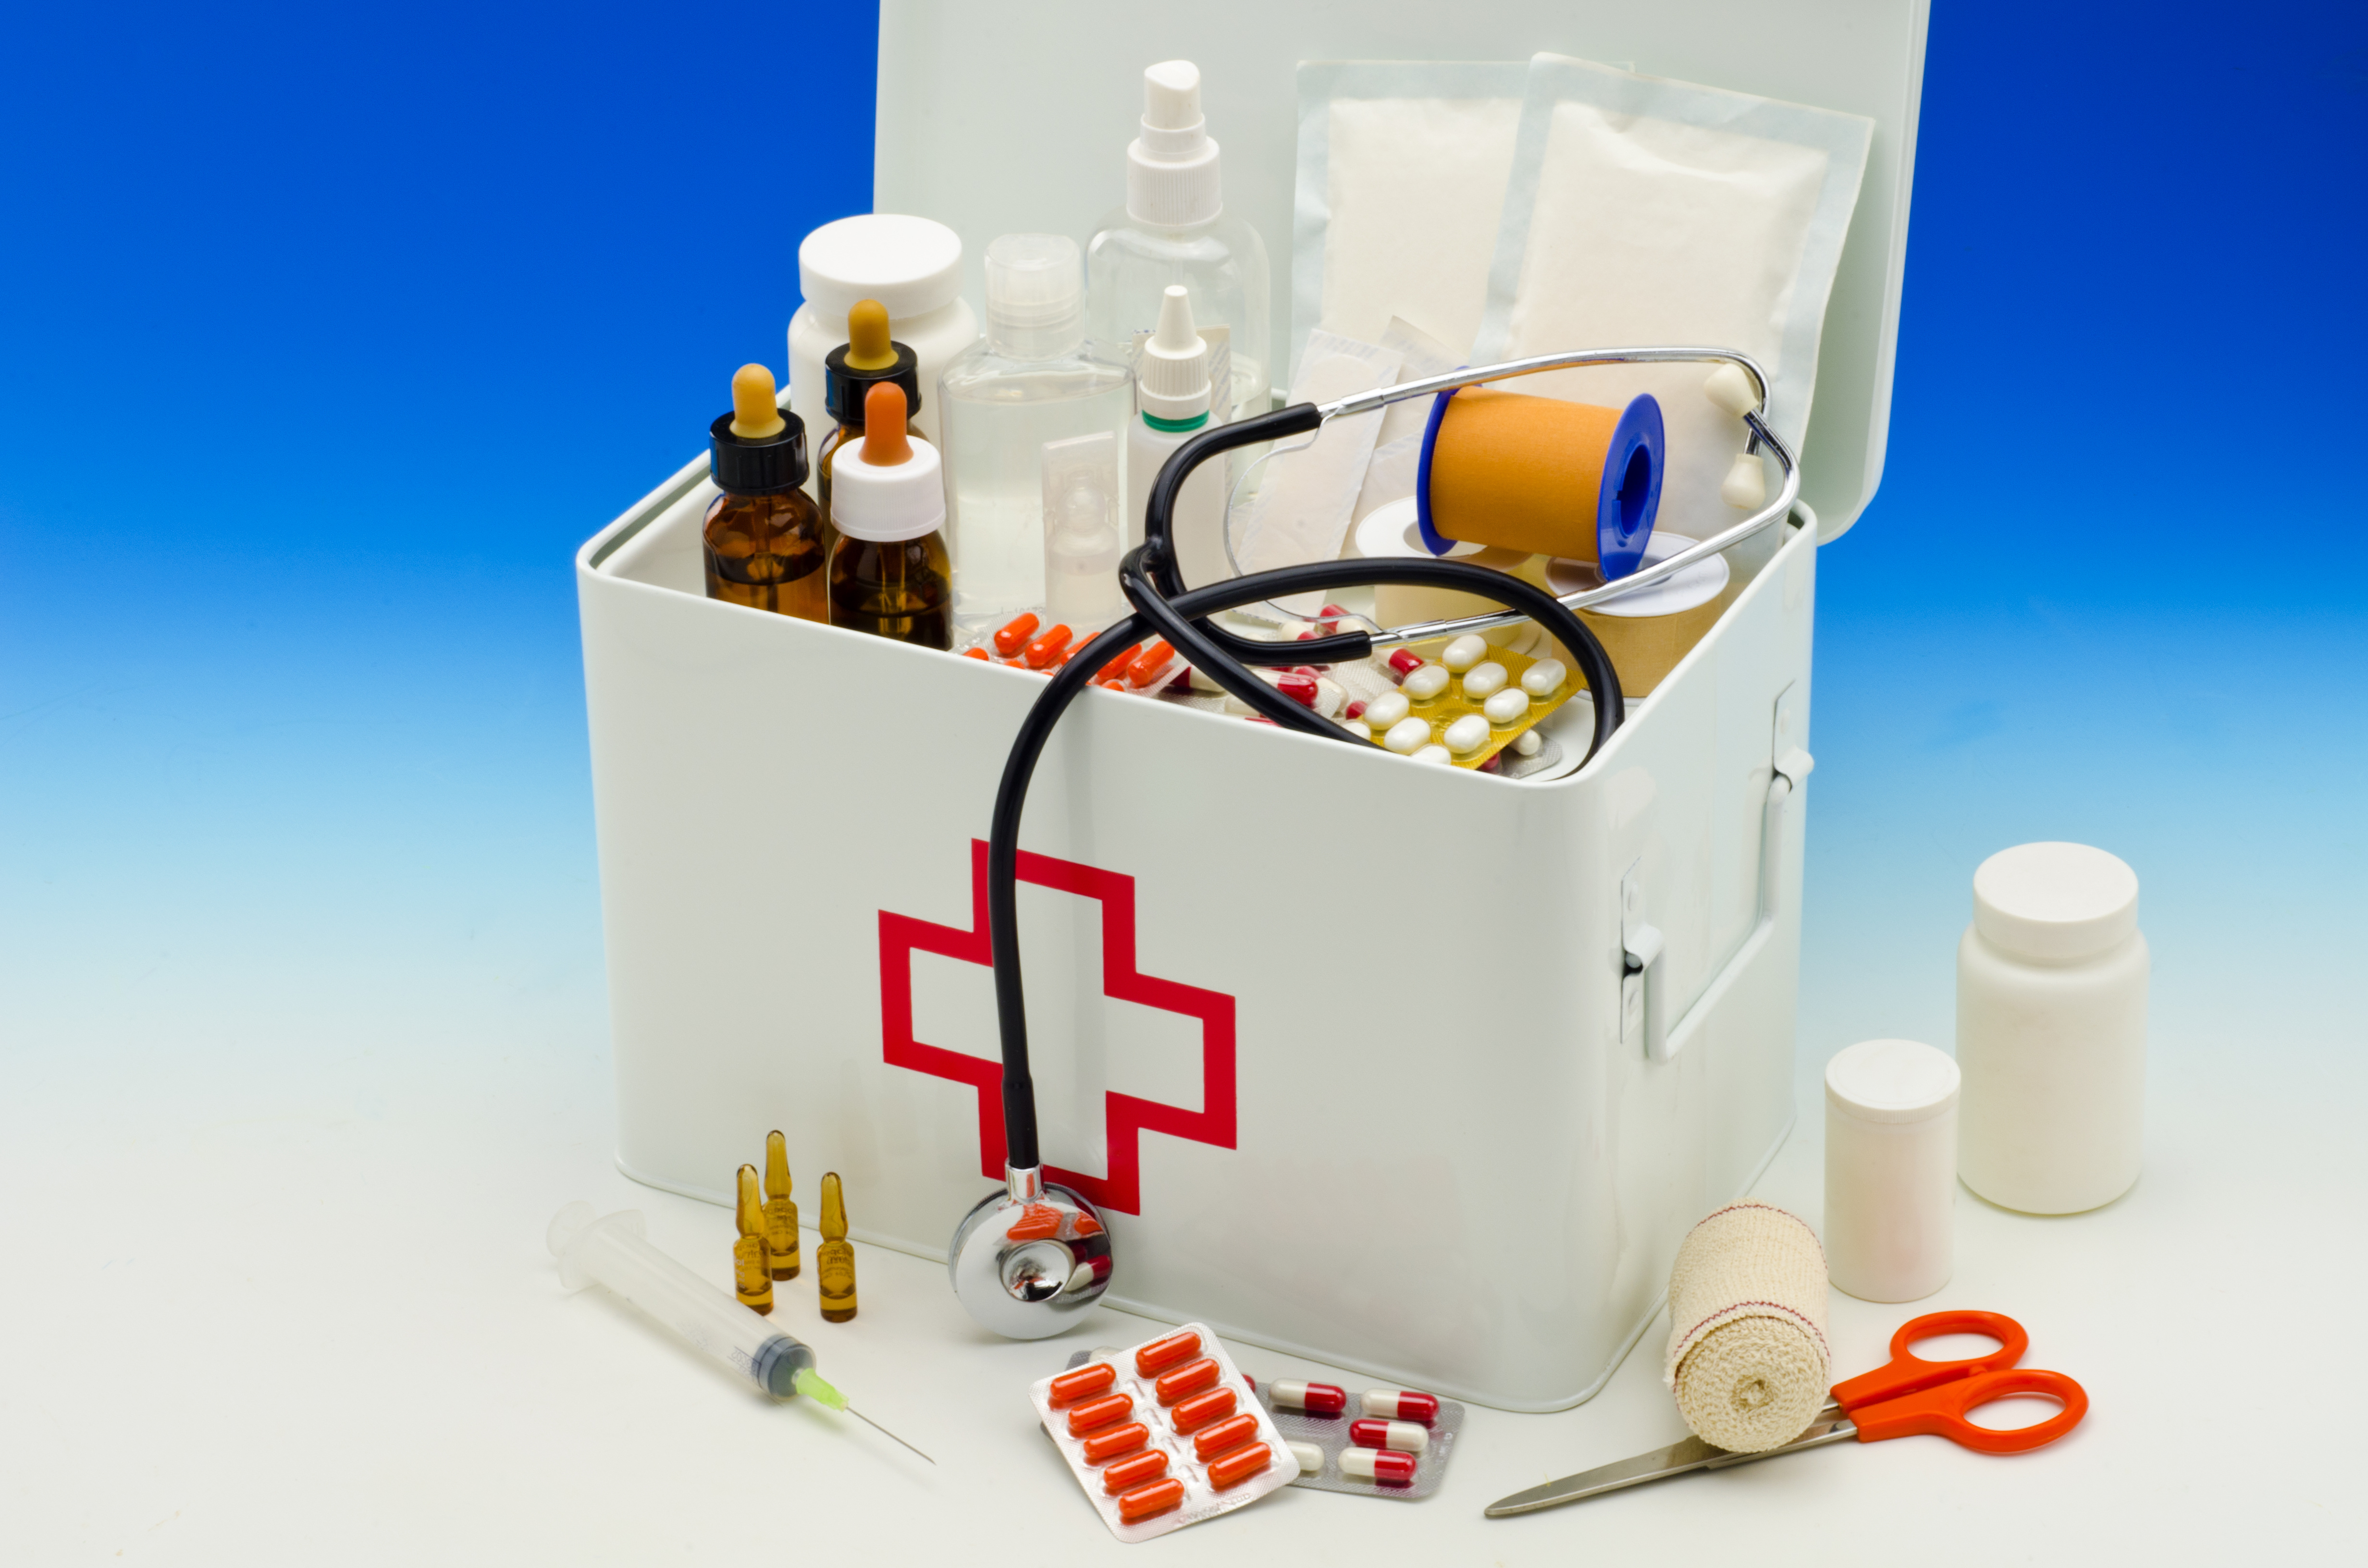 First Aid Kit Contentd List